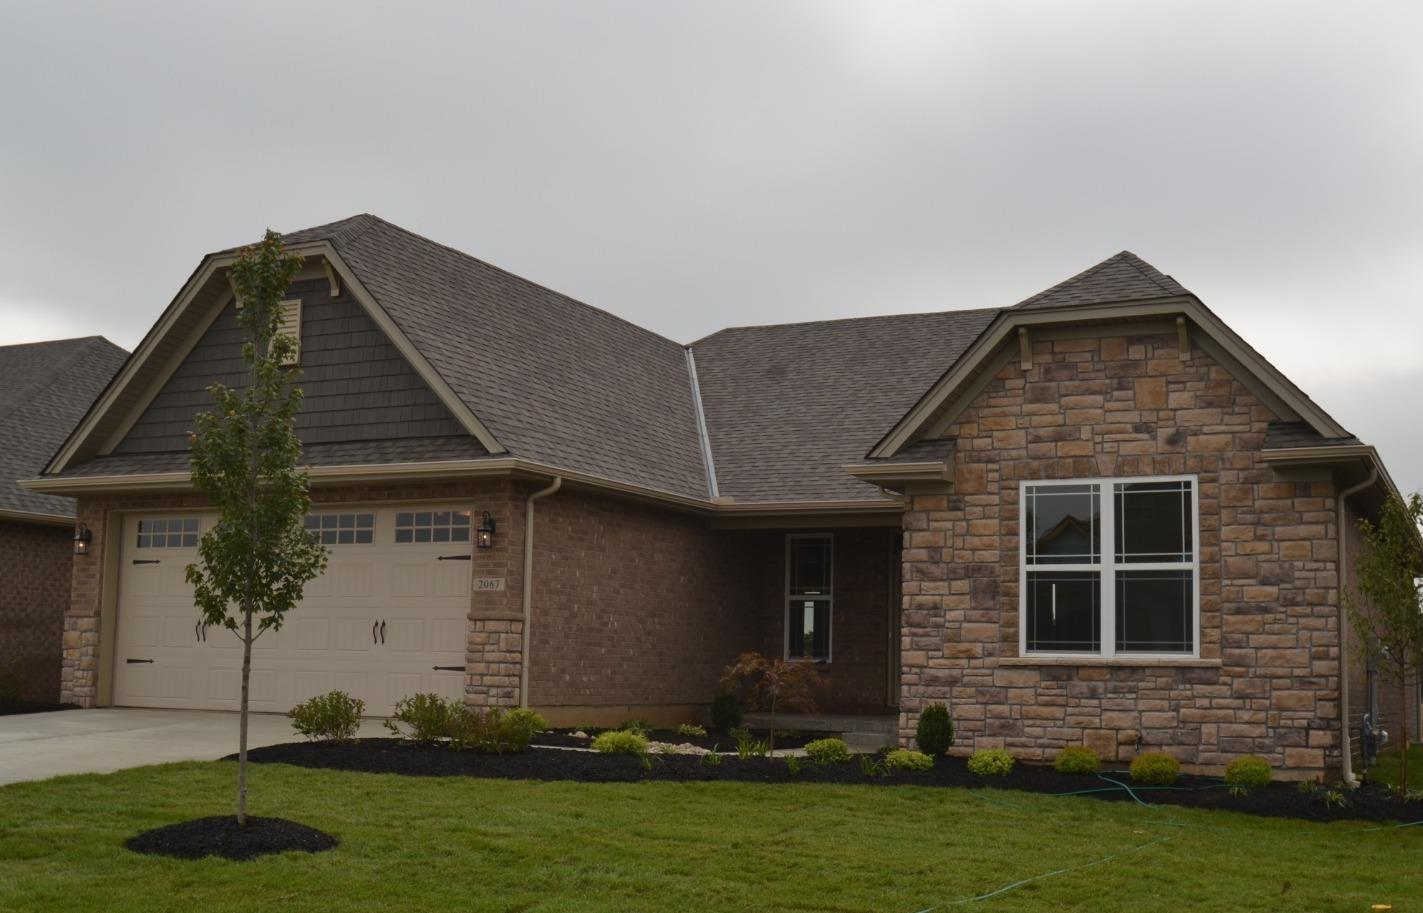 2067 Demoret Ln, VC-8 Ross Twp., OH